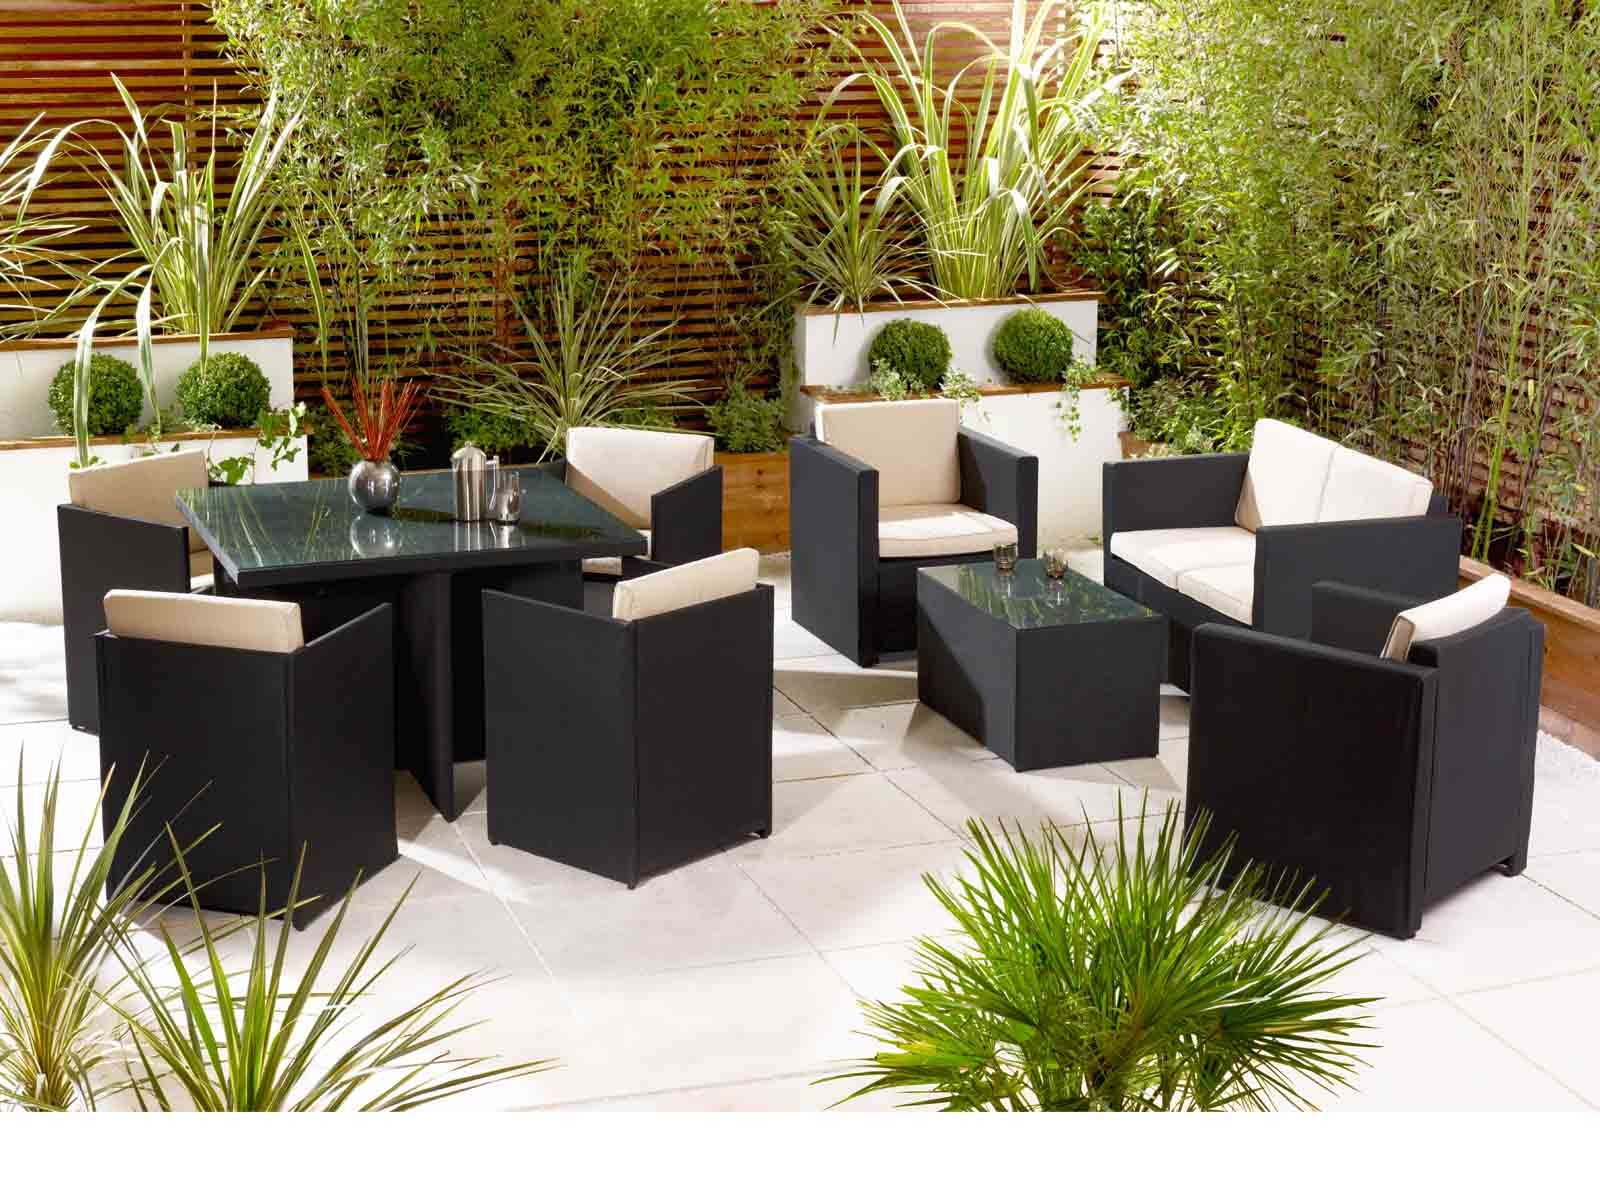 Landfair on Furniture Rattan Is Not Just For Indoors